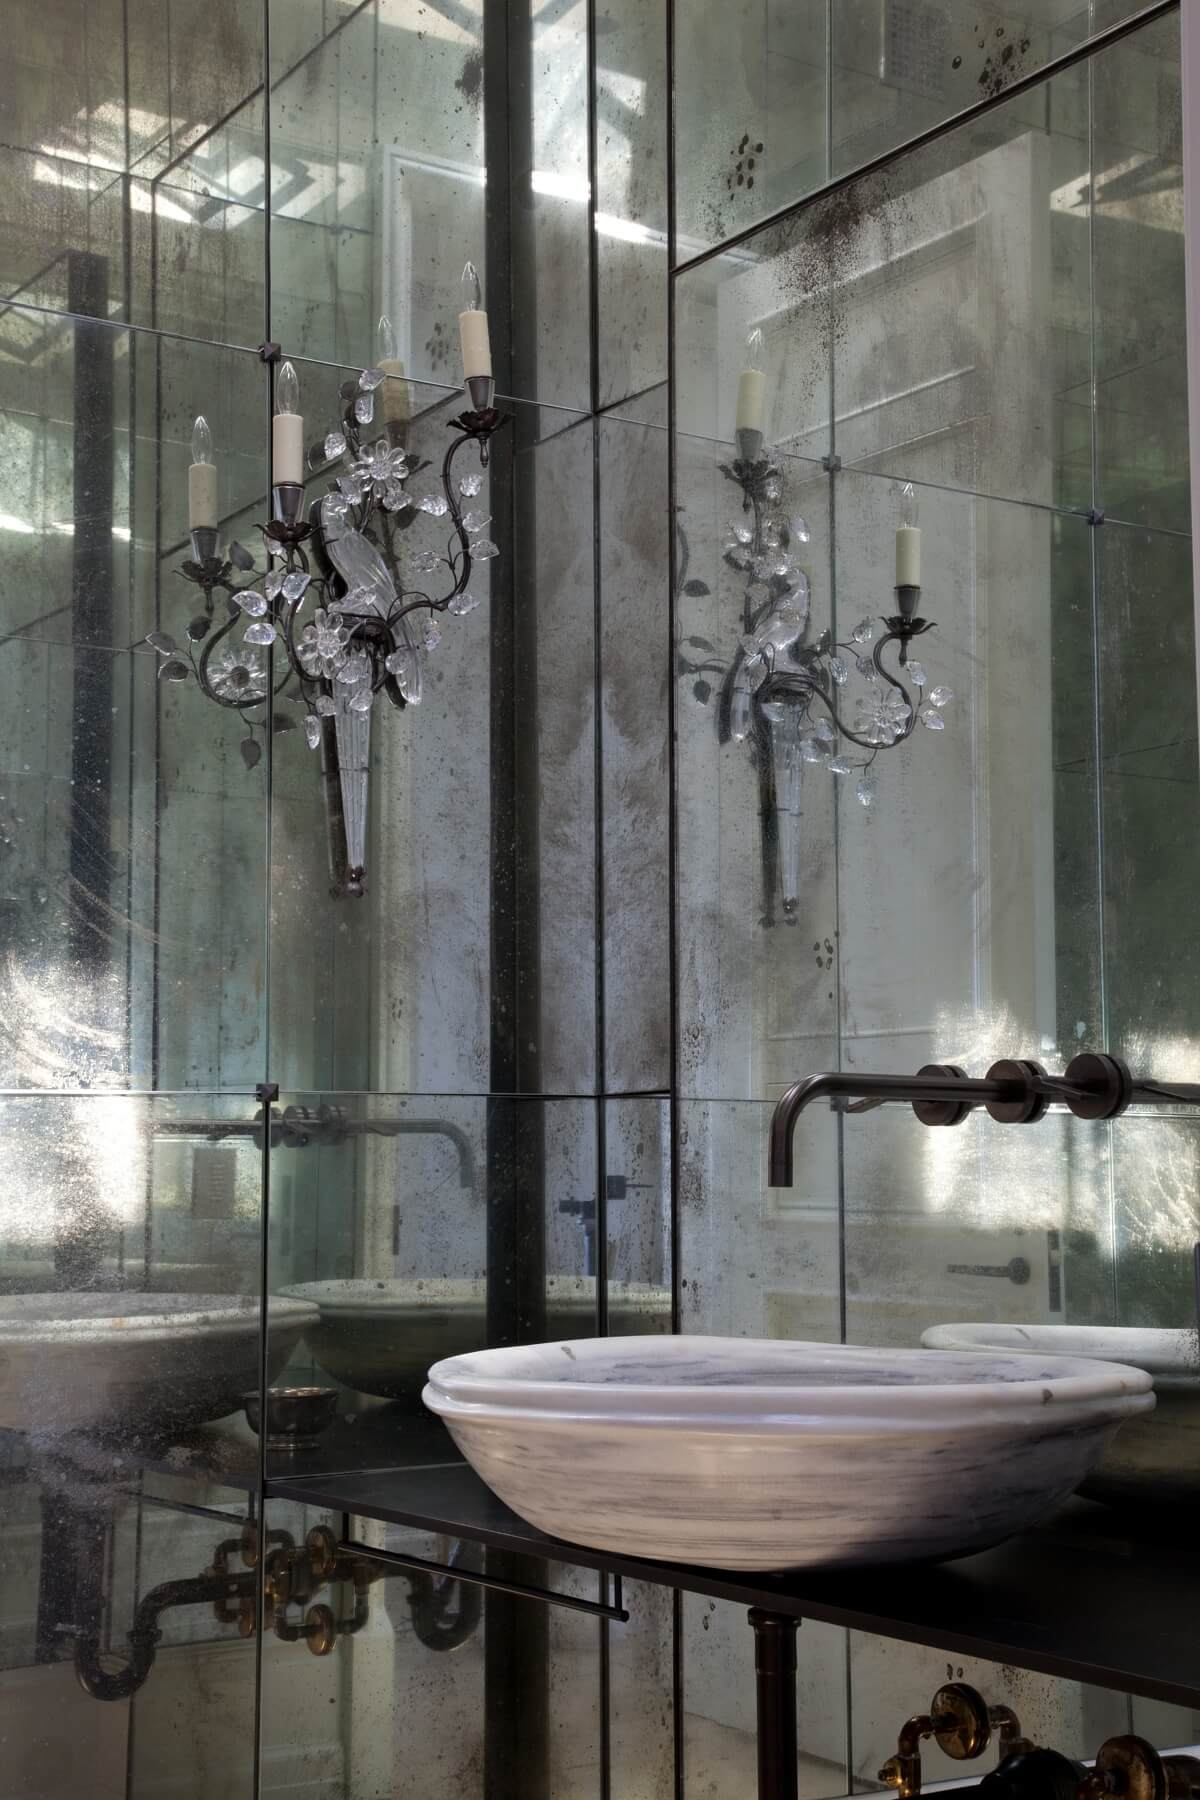 This striking powder room with its antique mirrored walls, pair of iron and crystal bird sconces and antique Turkish stone sink is truly one of a kind. Image: Miller Mobley